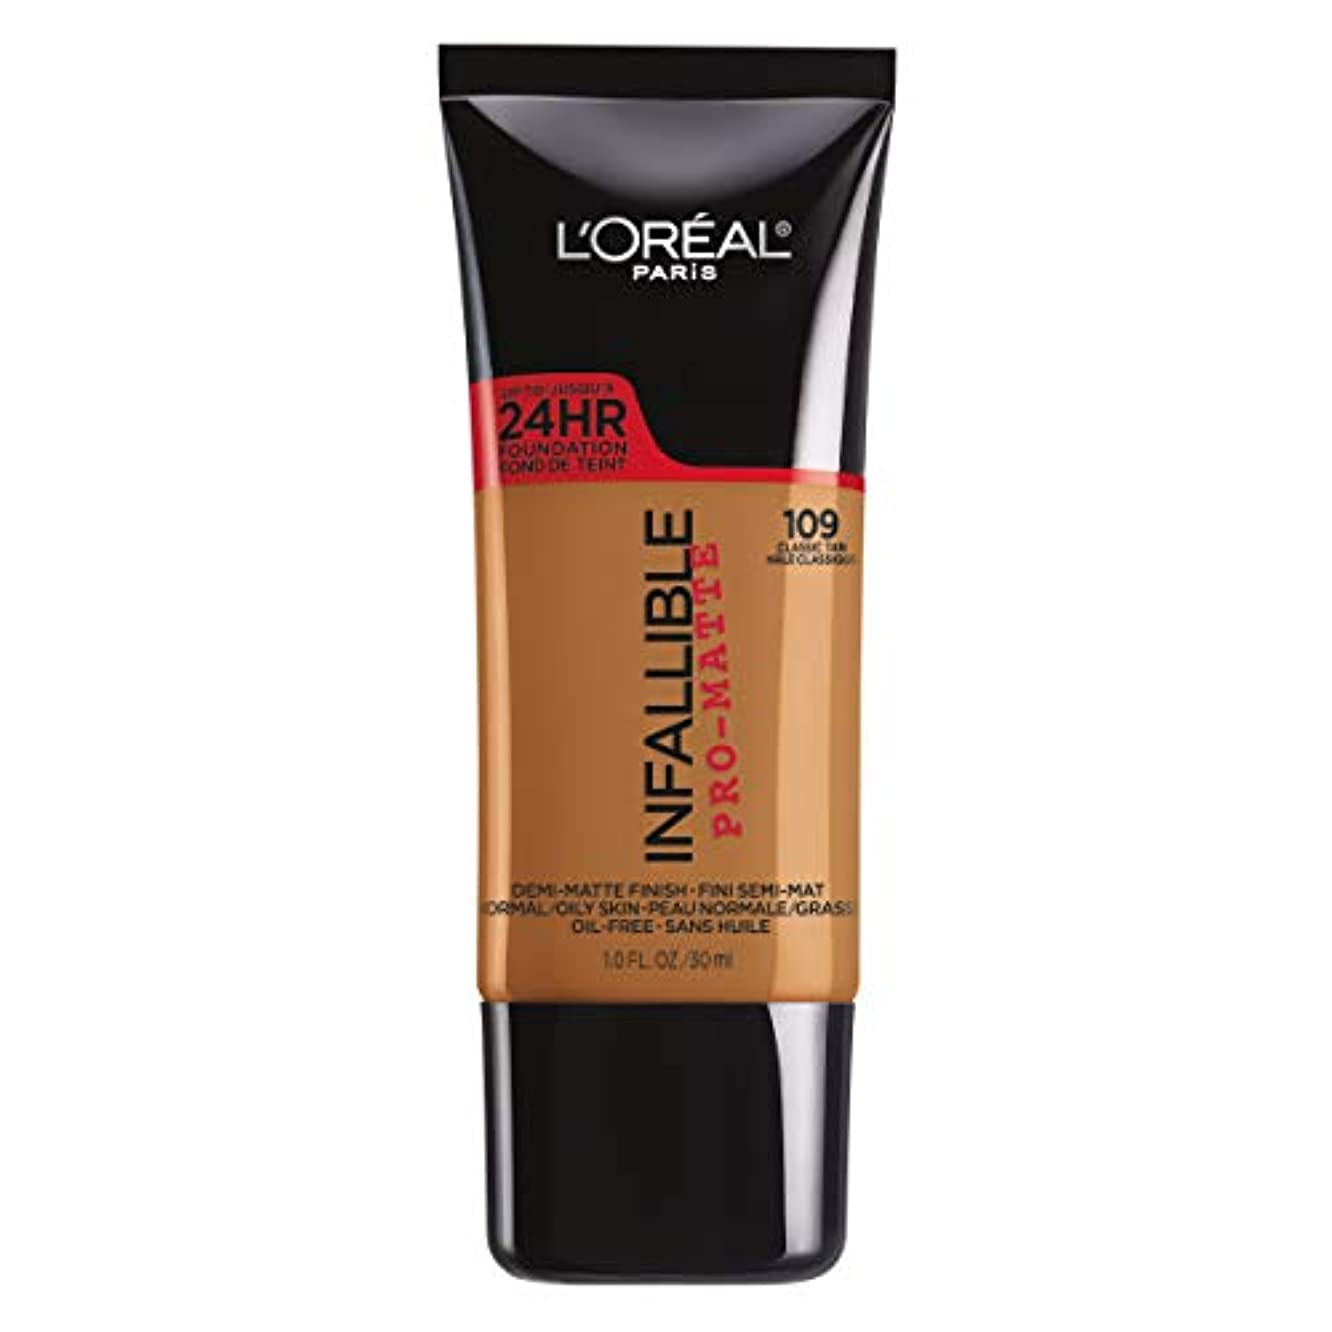 農学シットコム減るL'Oreal Paris Infallible Pro-Matte Foundation Makeup, 109 Classic Tan, 1 fl. oz[並行輸入品]